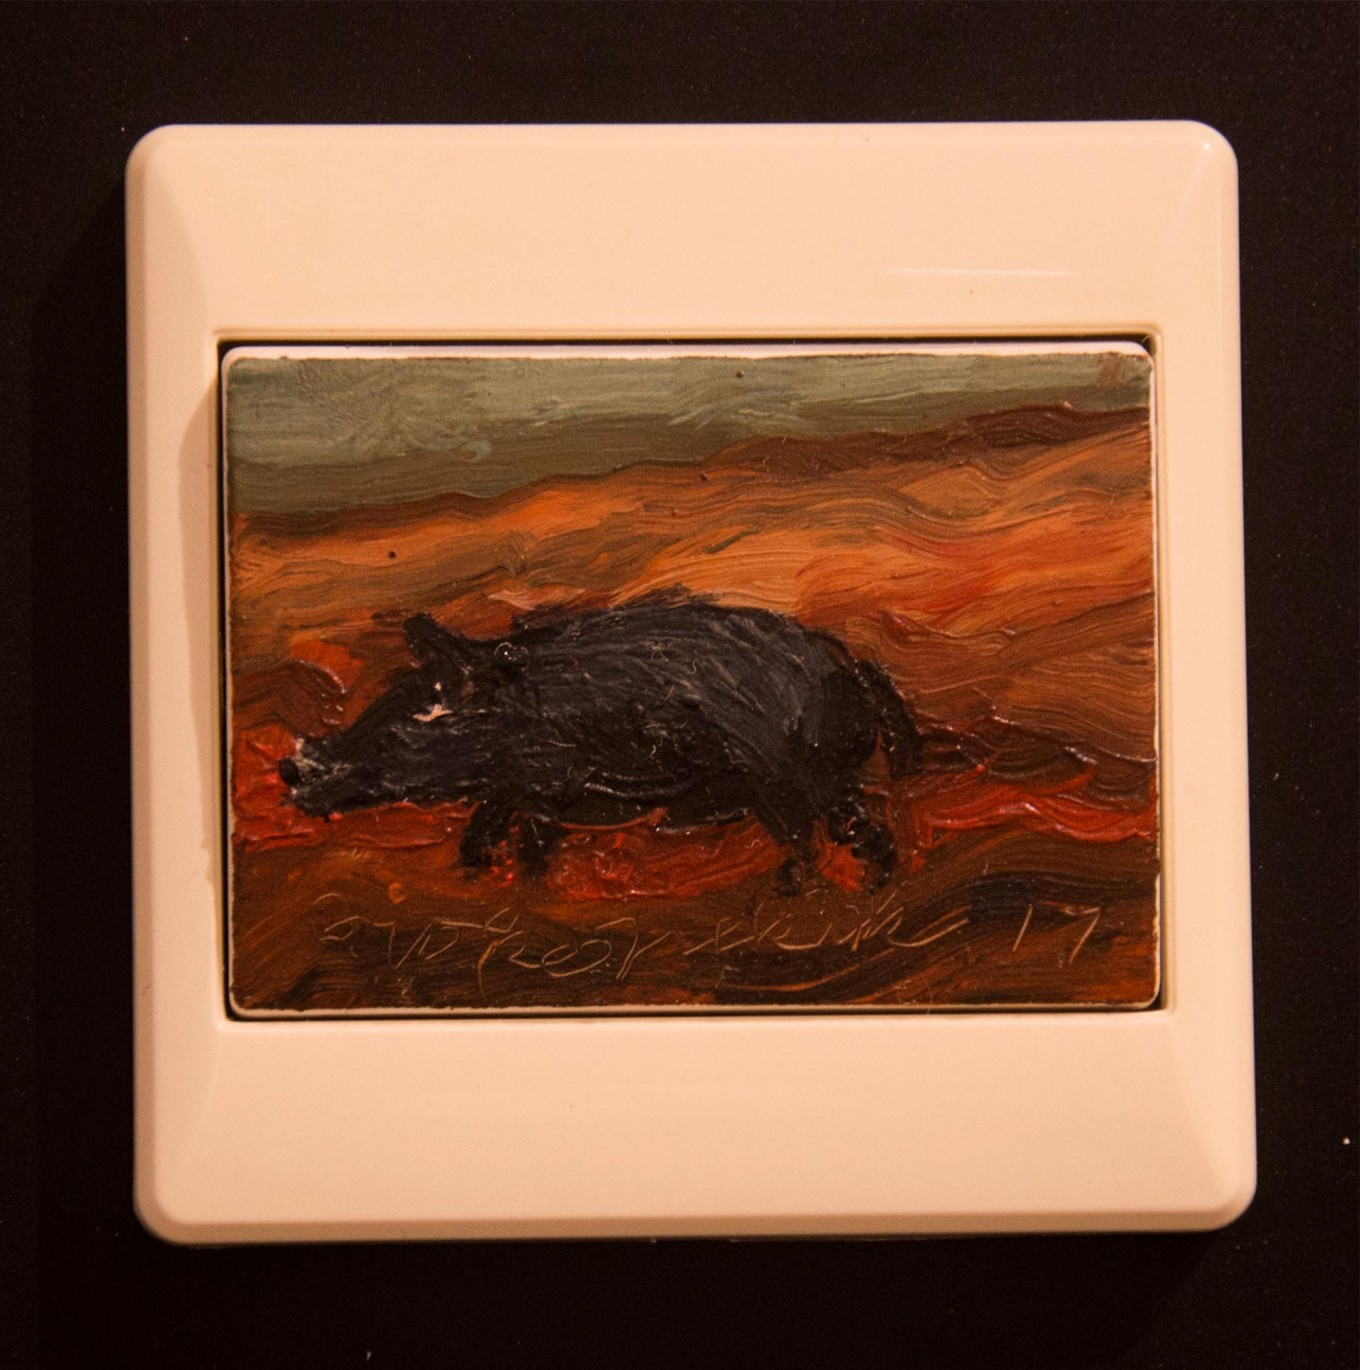 Raja Celeng (King of the Boars), a light switch 